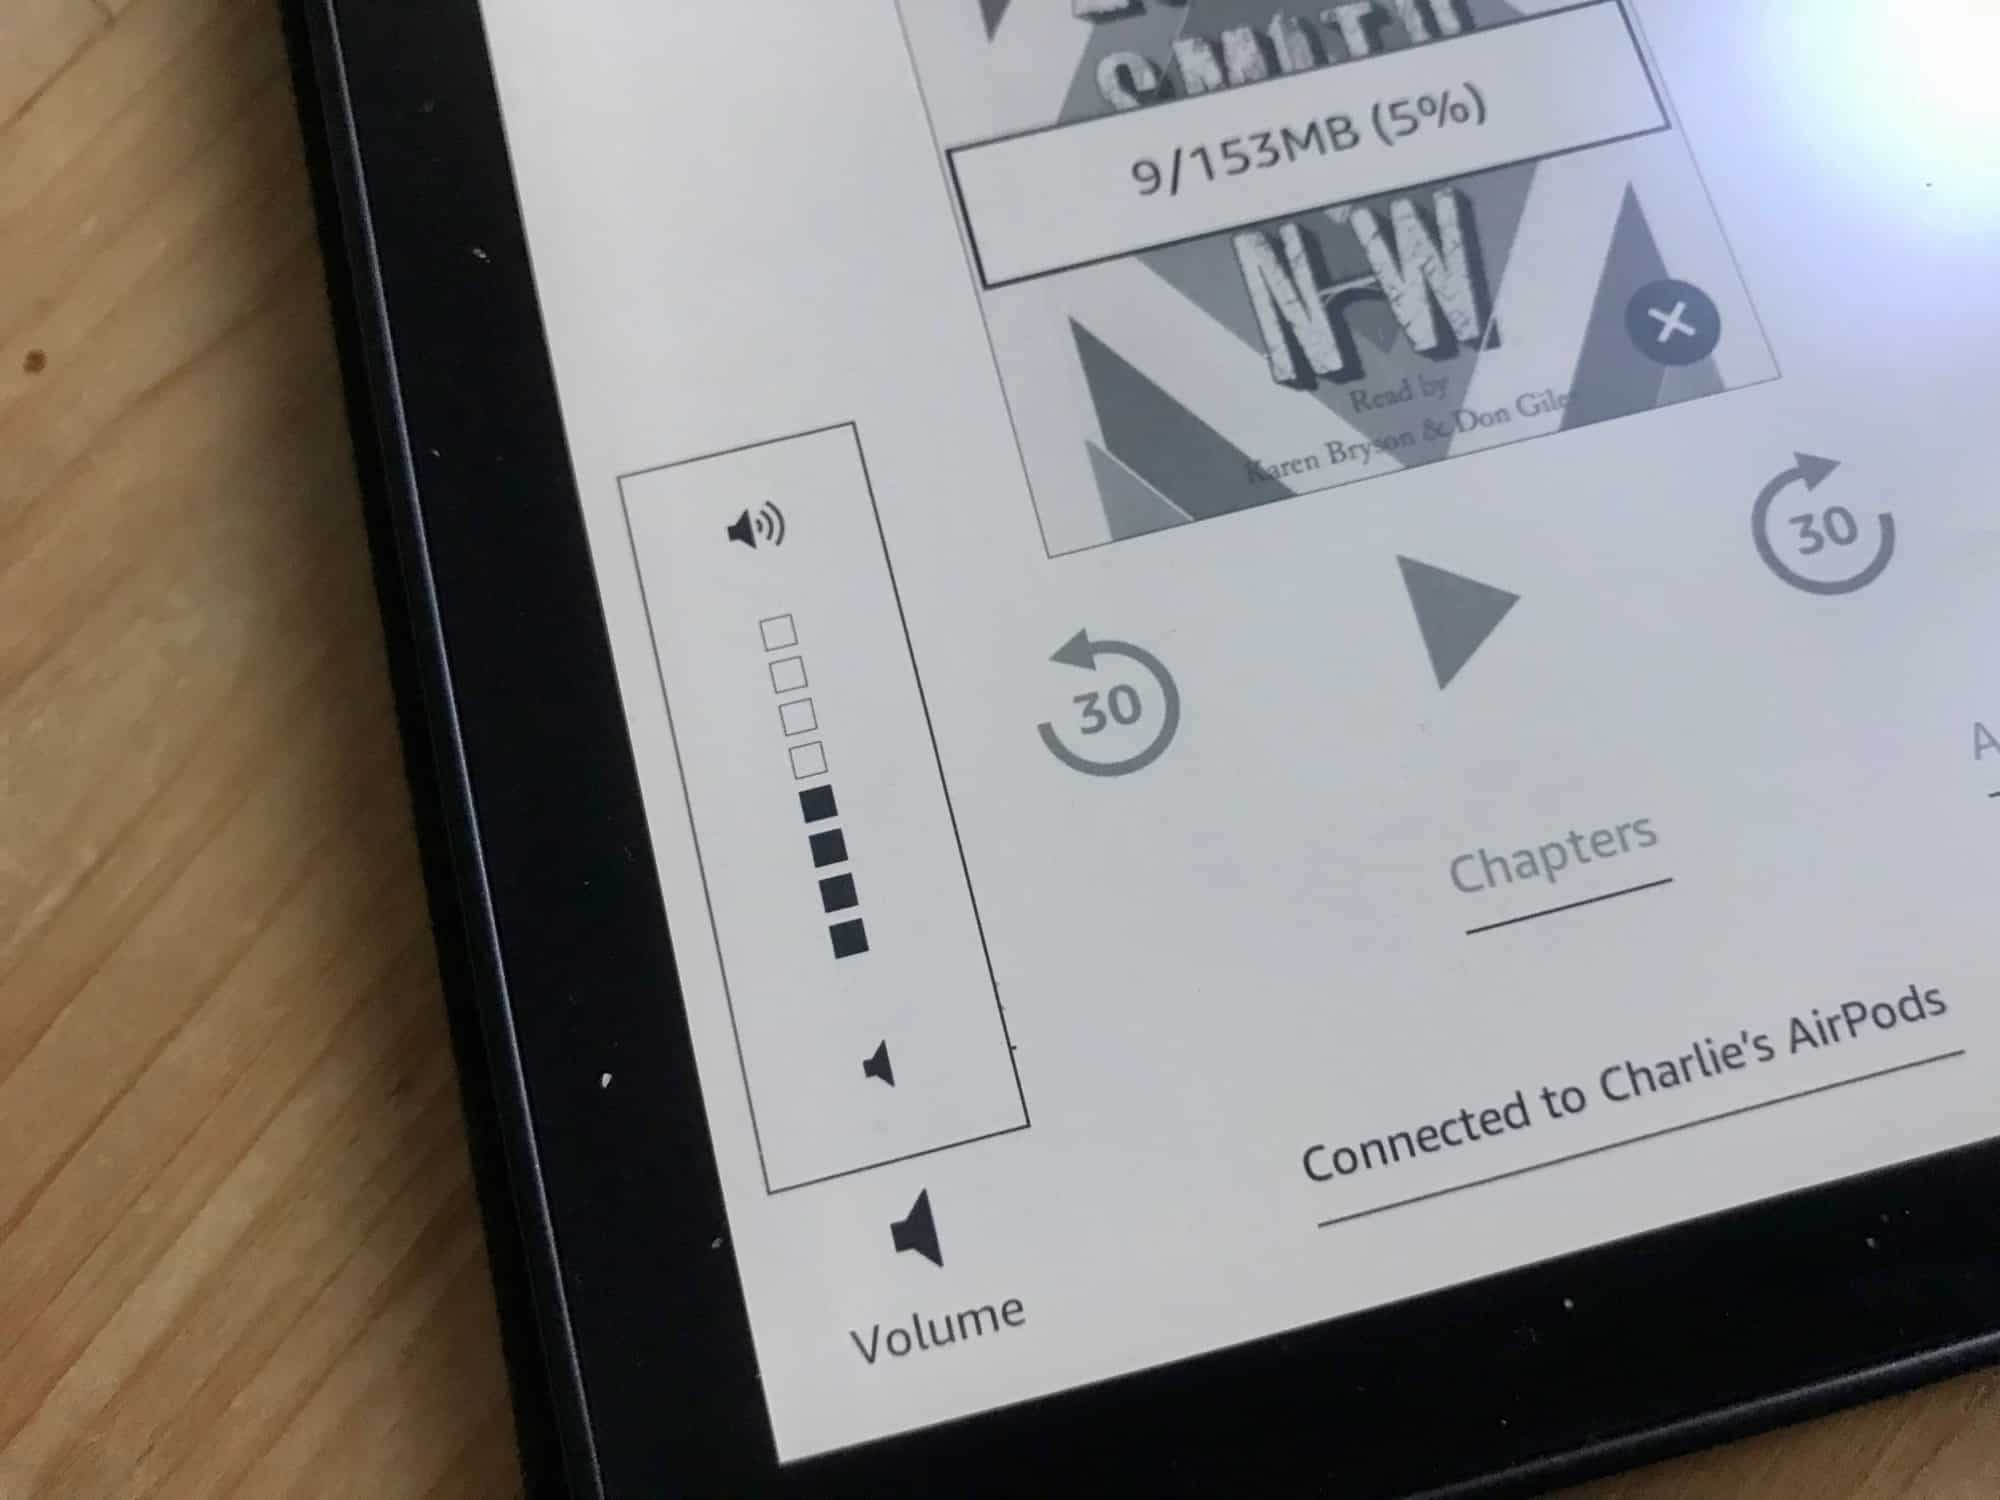 Kindle Oasis' volume control.